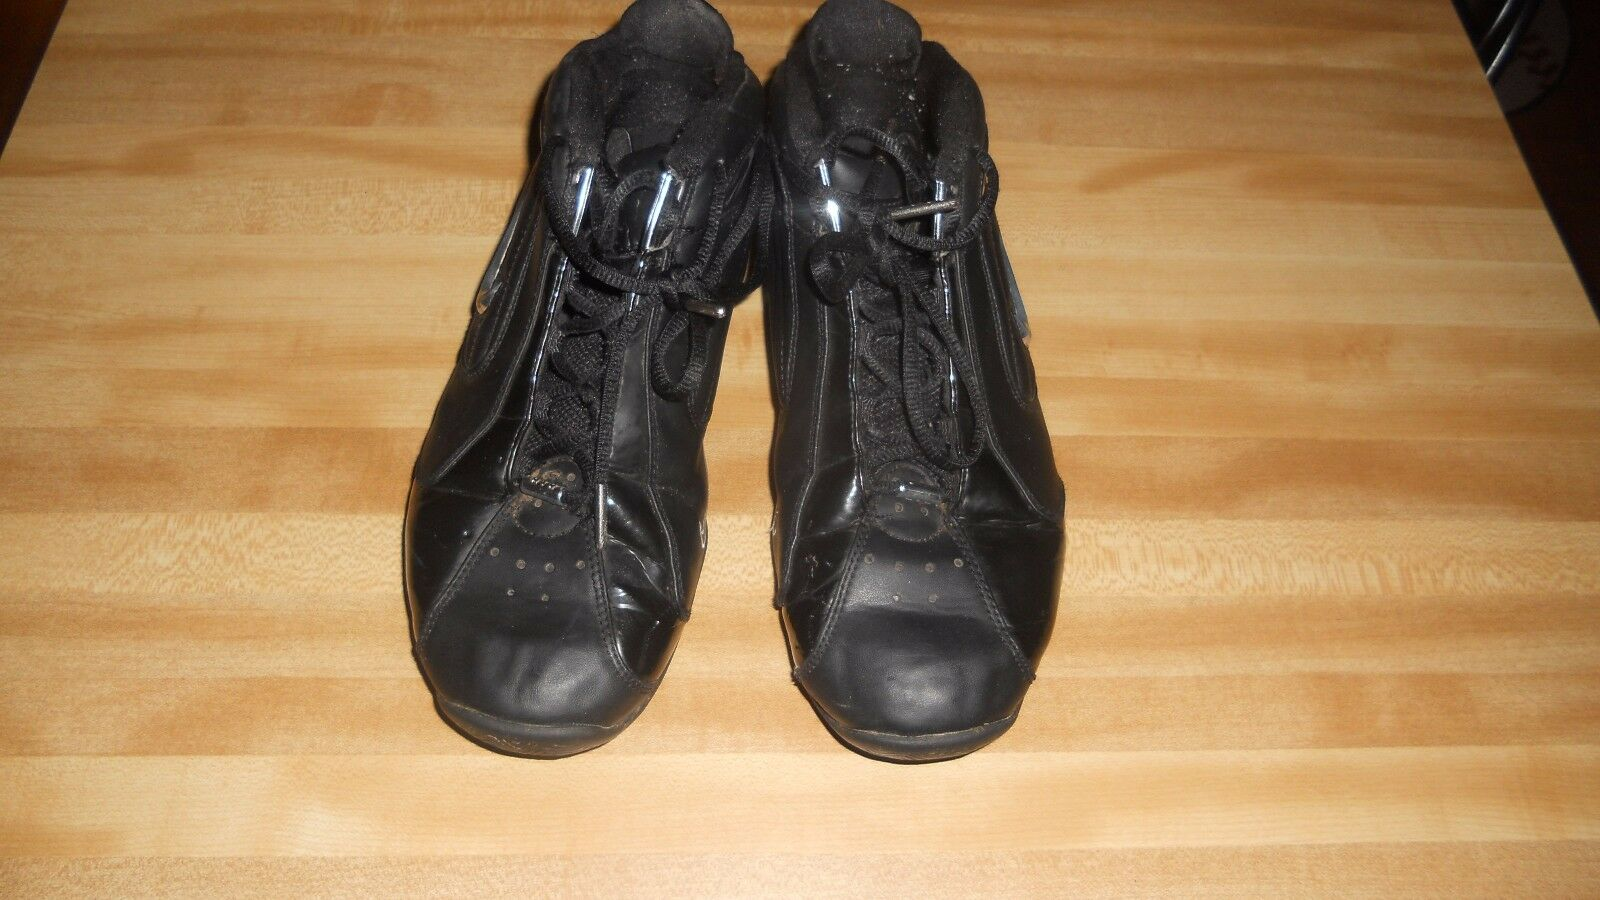 NIKE ZOOM AIR SNEAKERS SIZE 8 NICE CONDITION  New shoes for men and women, limited time discount